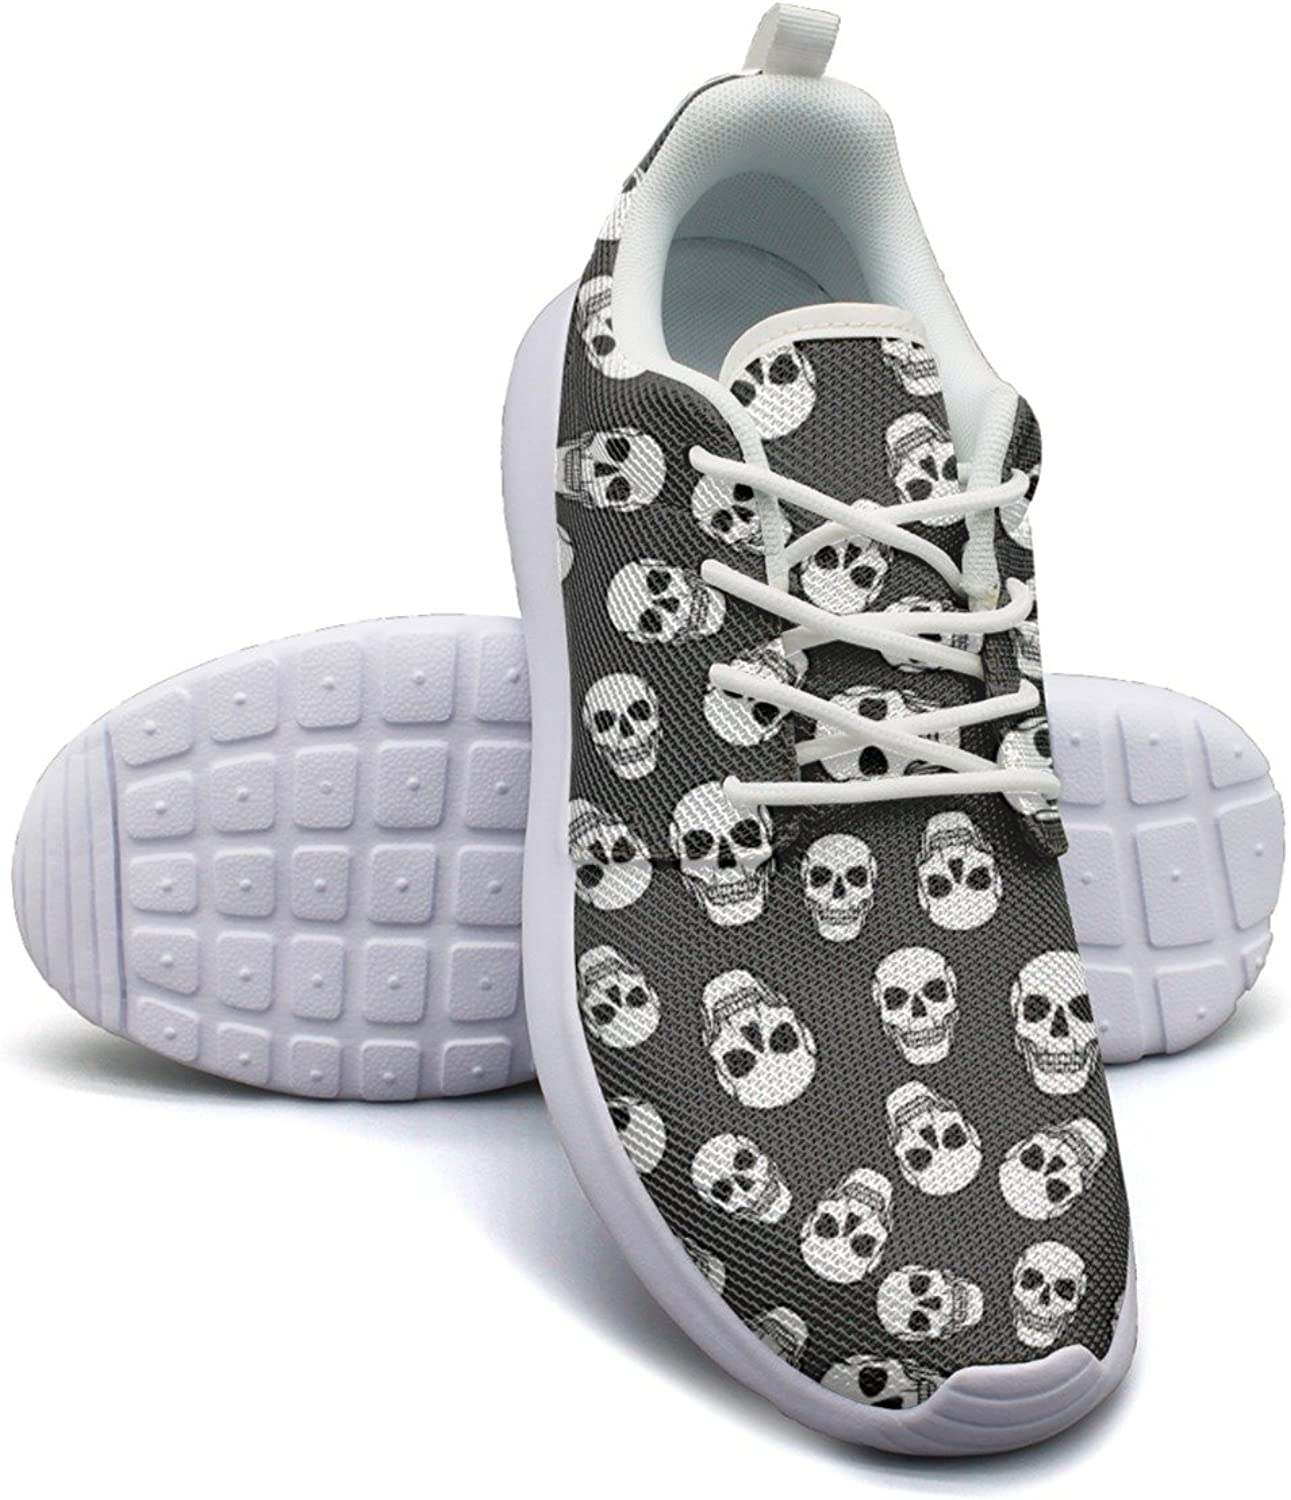 Dreadful Skulls Women's Fashion Sneakers shoes Casual Mesh Lightweight Running Sneakers